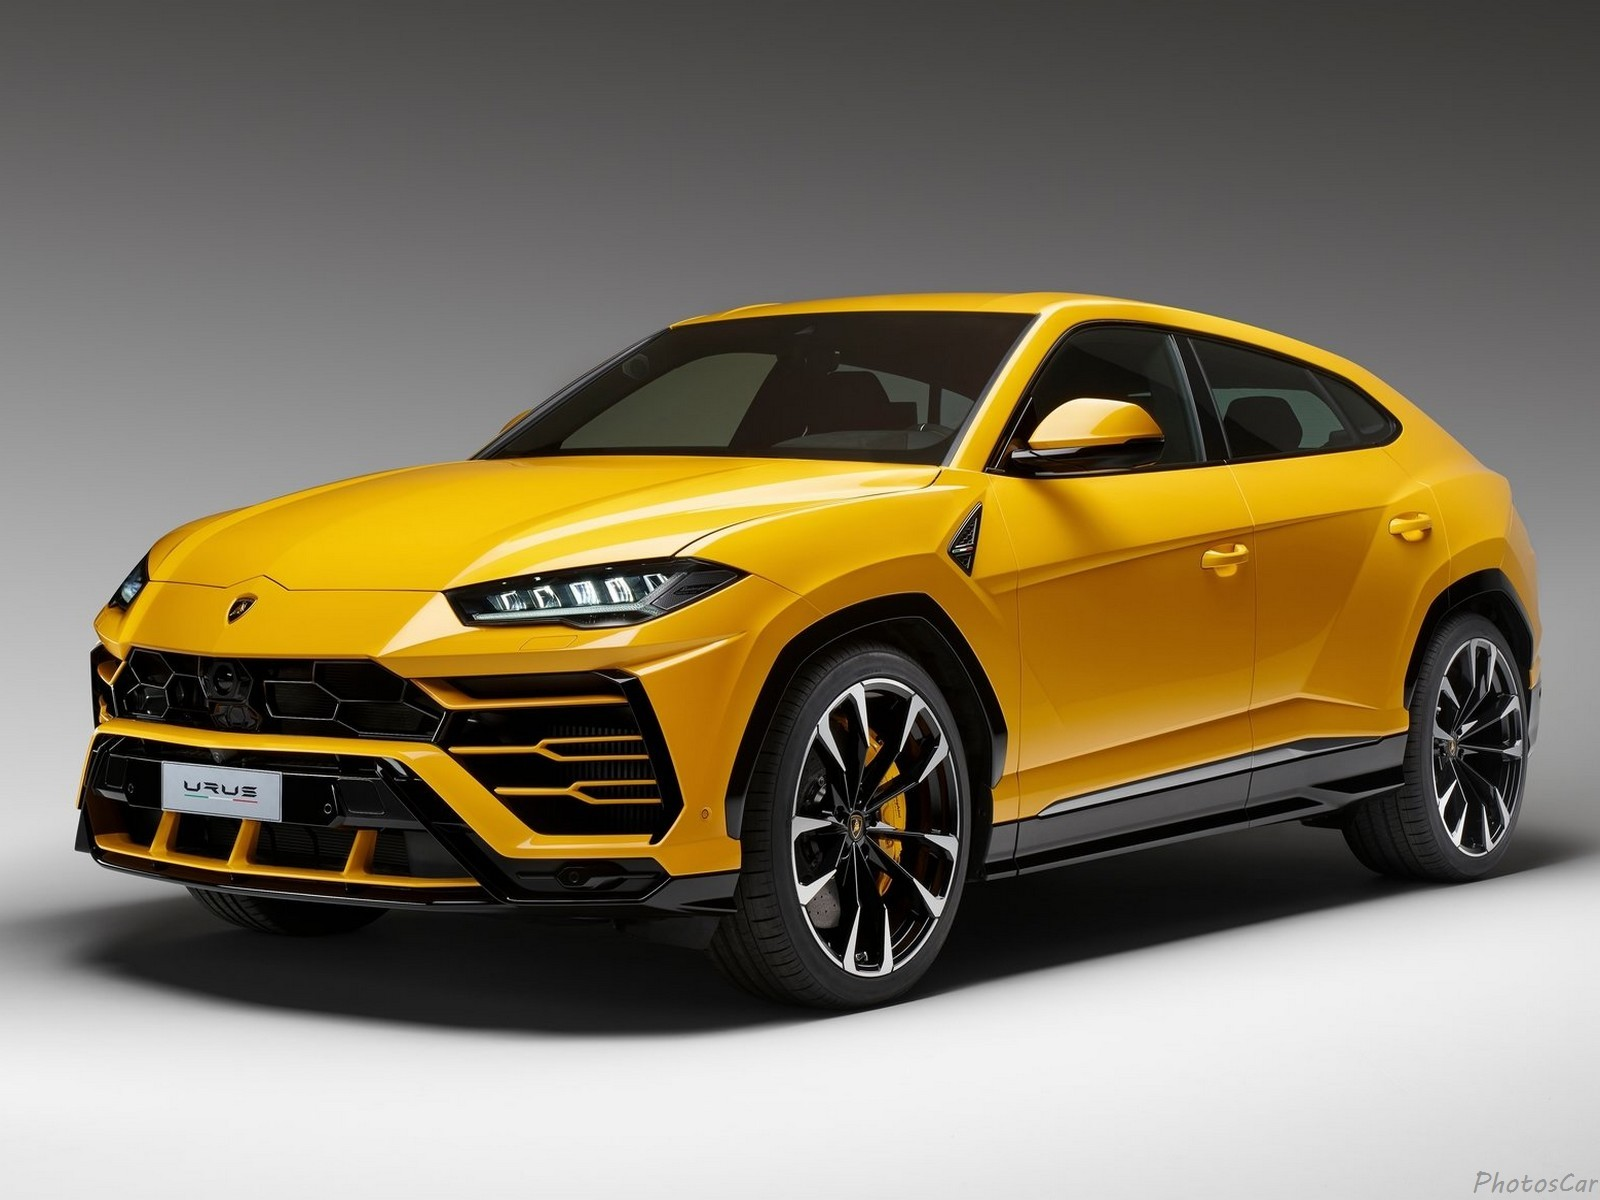 la nouvelle lamborghini urus 2019 le suv le plus rapide du moment. Black Bedroom Furniture Sets. Home Design Ideas